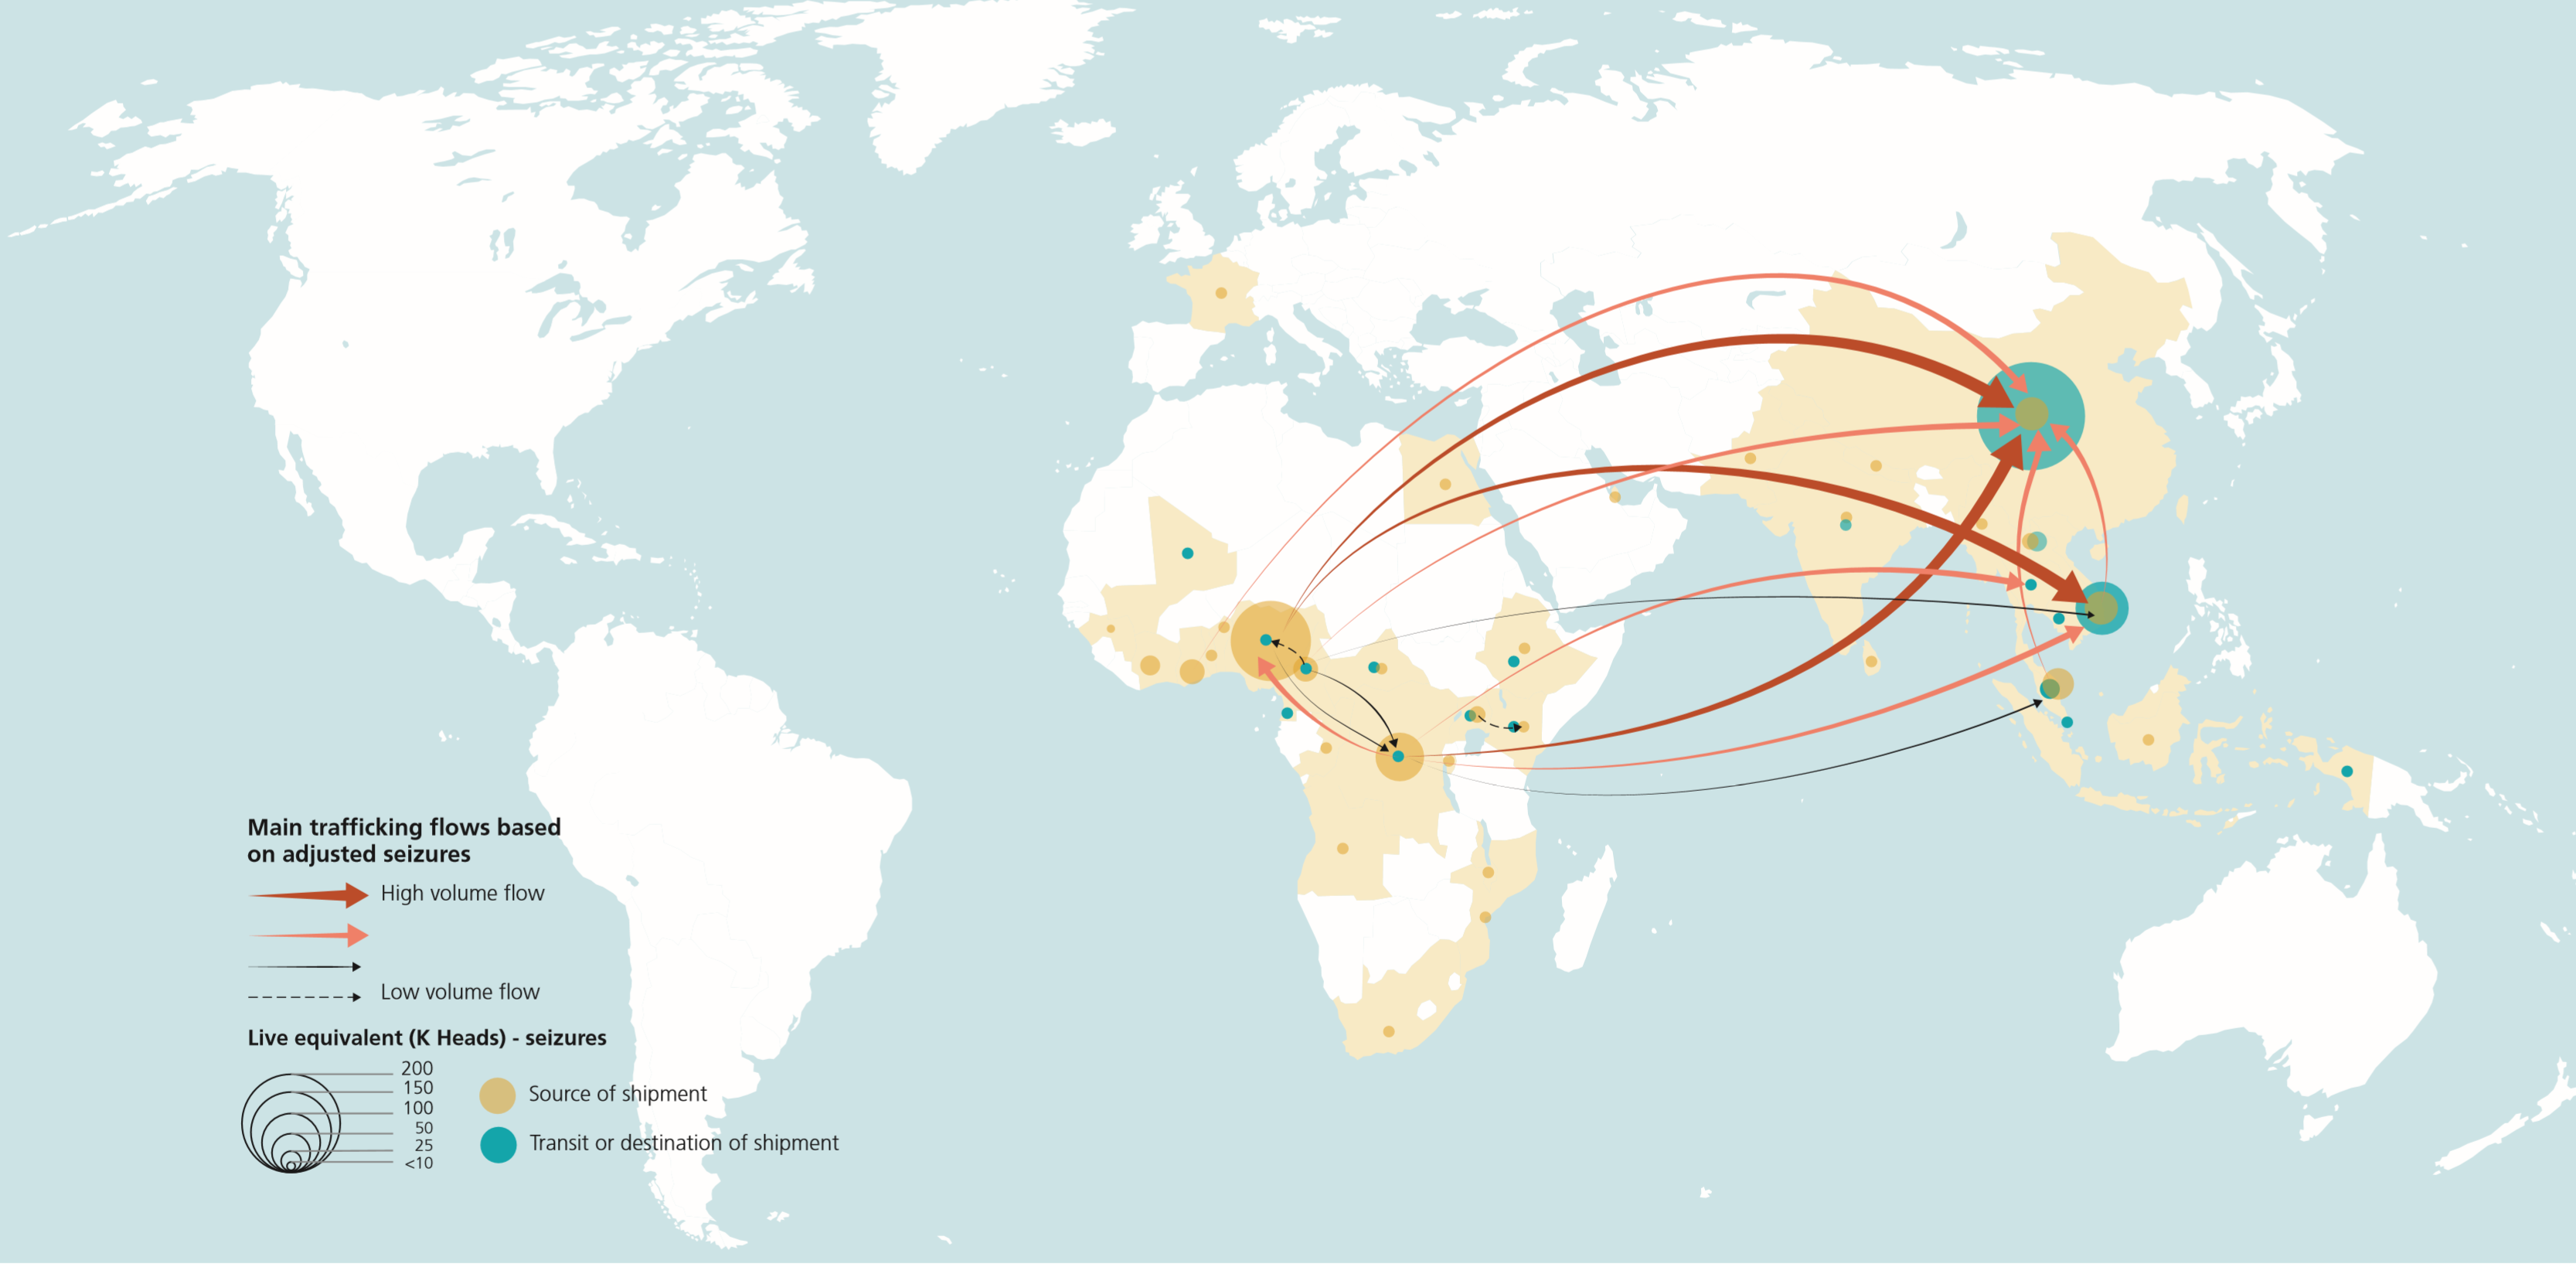 UNODC-World WISE-Main trafficking flows and reported origins-destinations of seized pangolin scales 2007-2018-WWCR2020-Wildlife_Crime_Pangolin